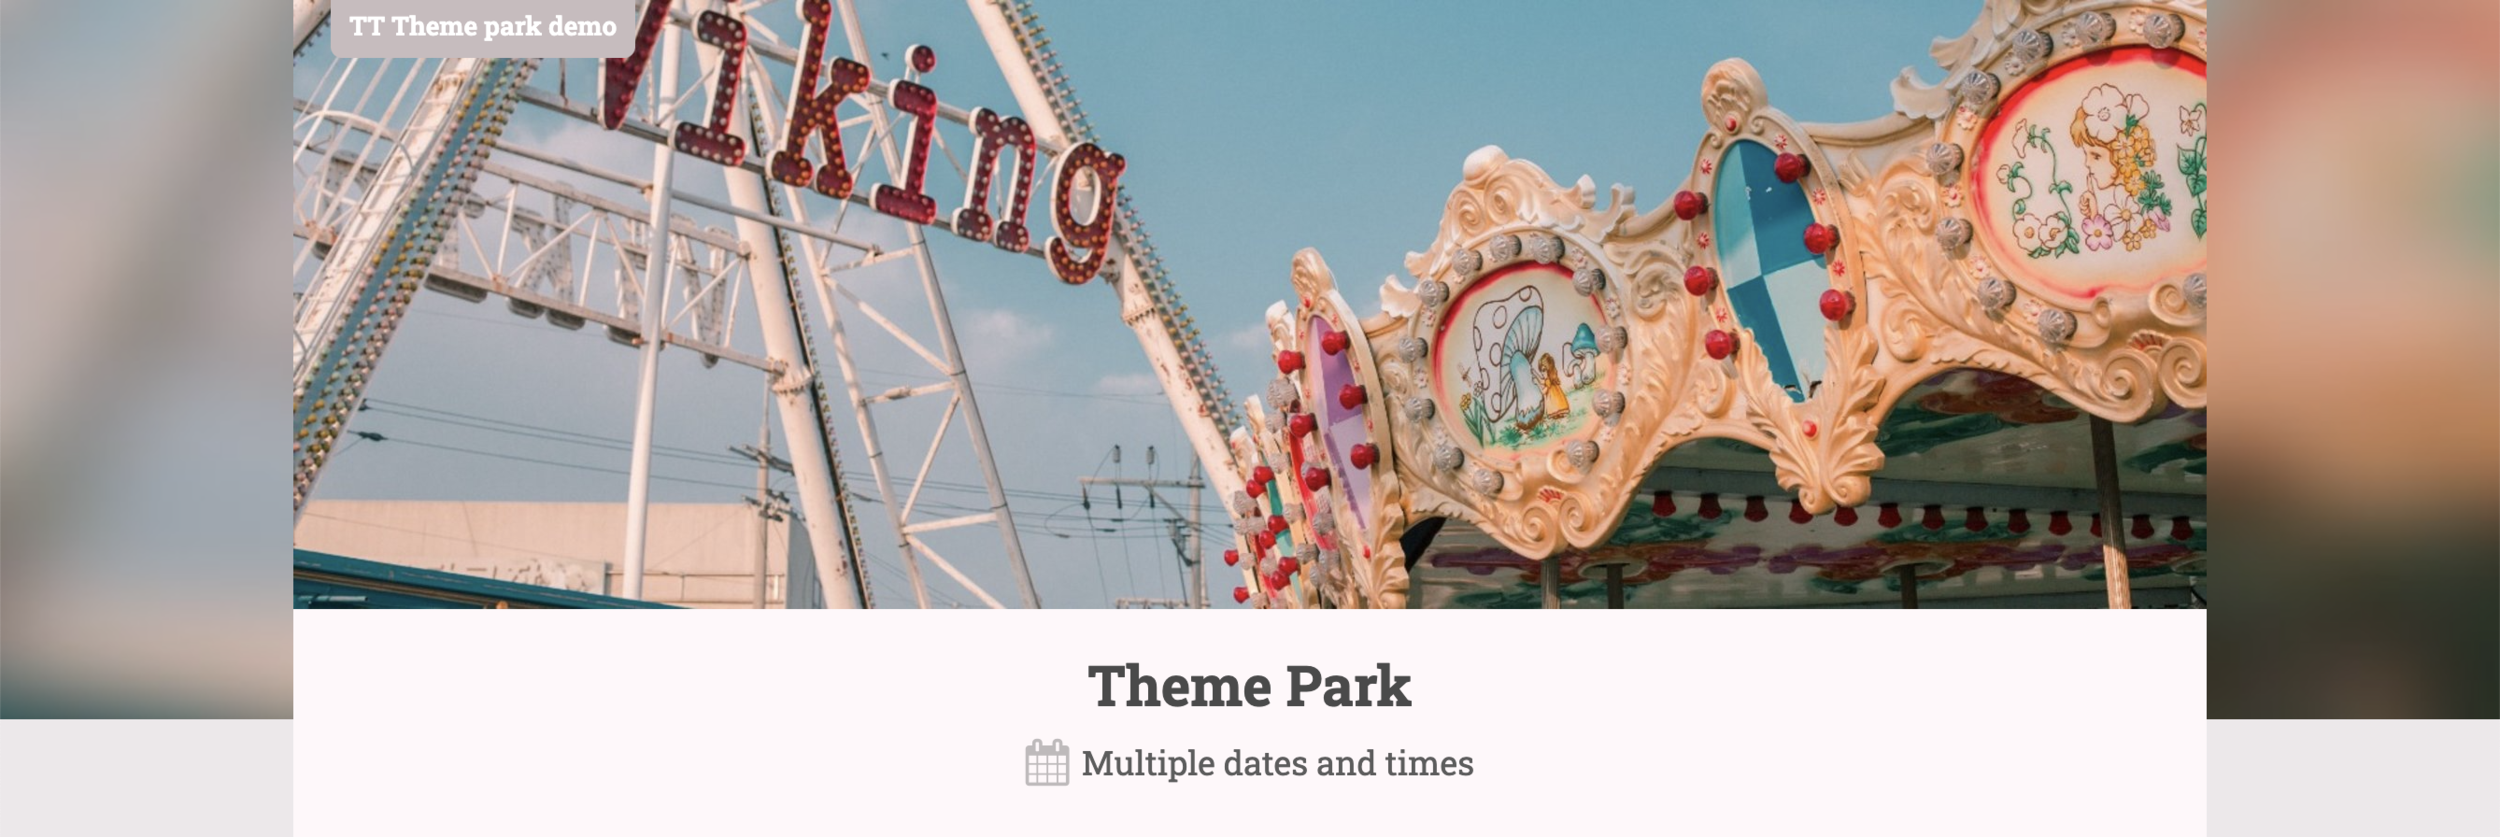 Sell tickets for a theme park